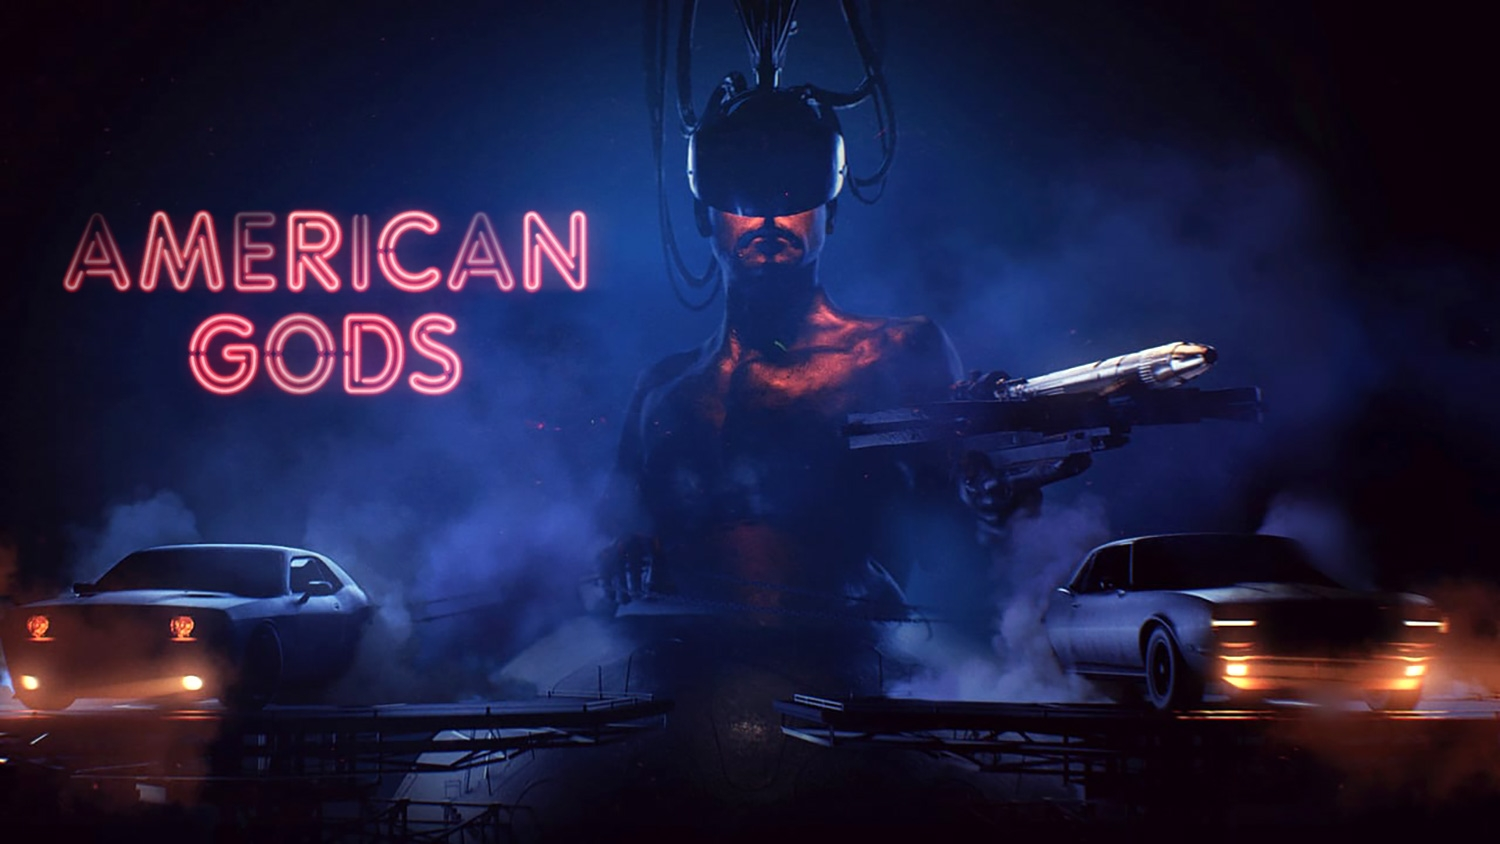 Patrick Clair On Creating American Gods' Iconic Title